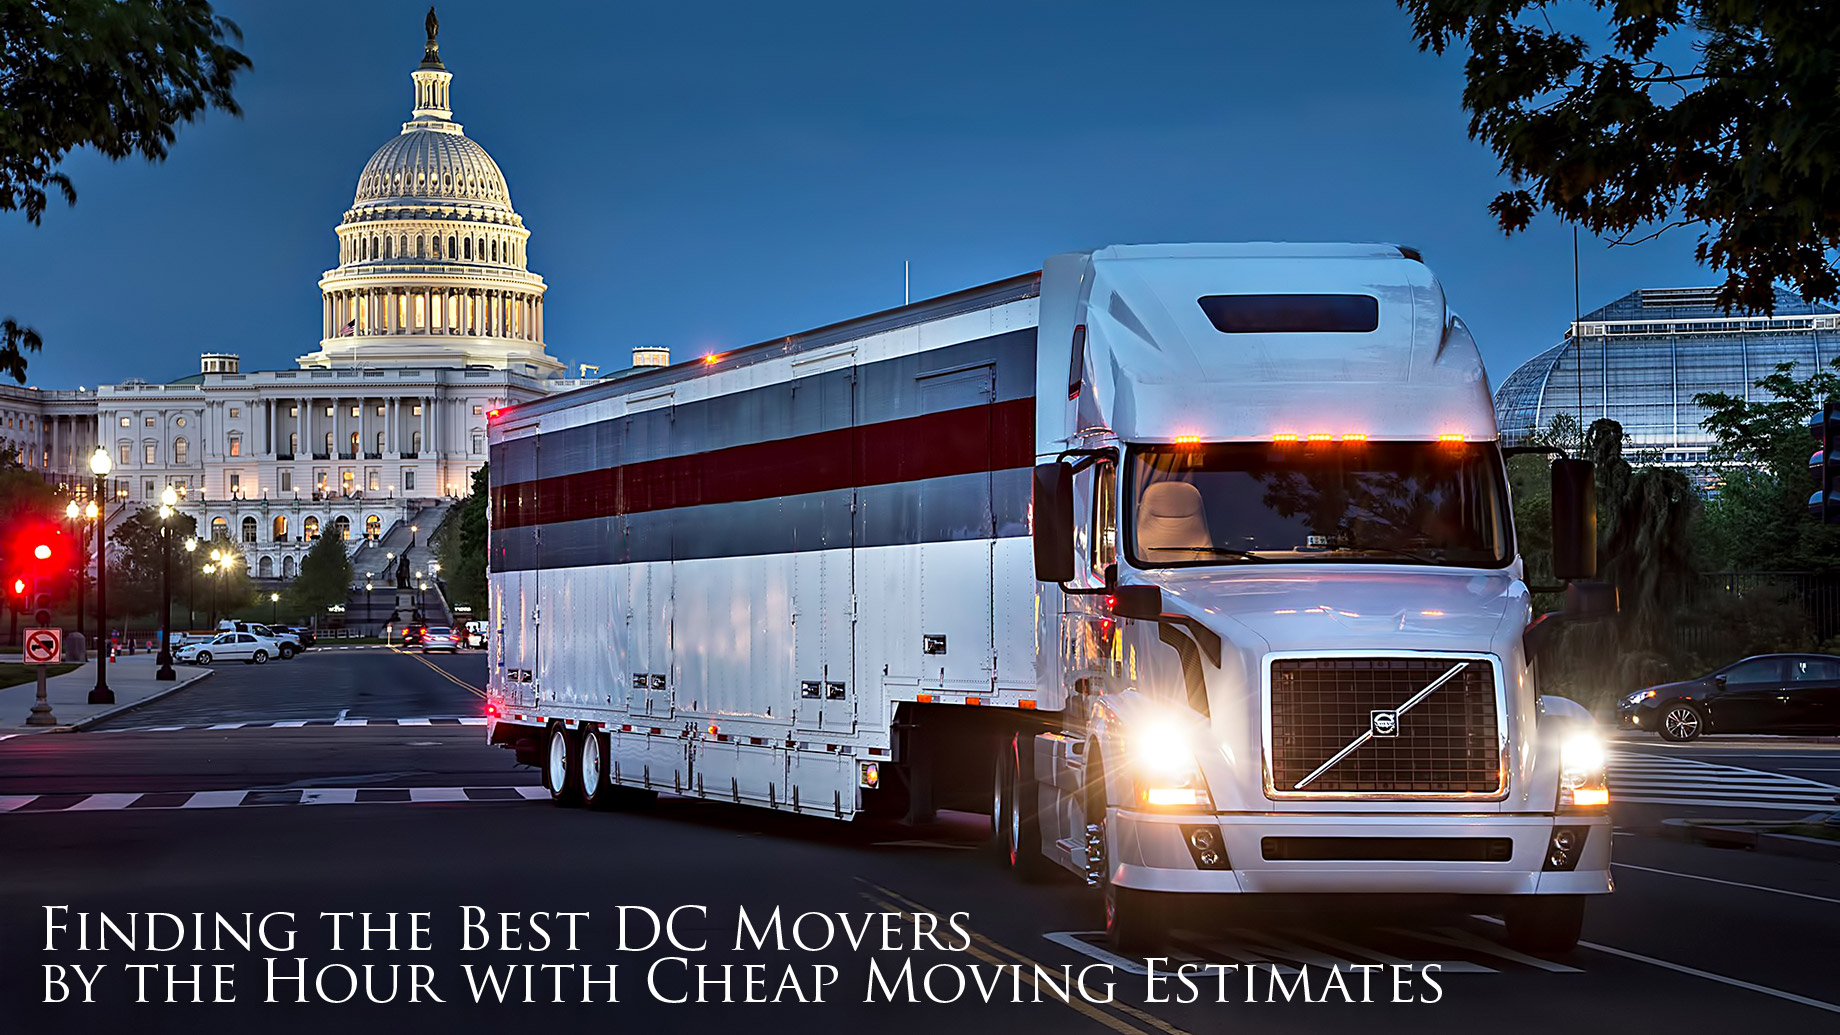 Real Estate Tips - Finding the Best DC Movers by the Hour with Cheap Moving Estimates